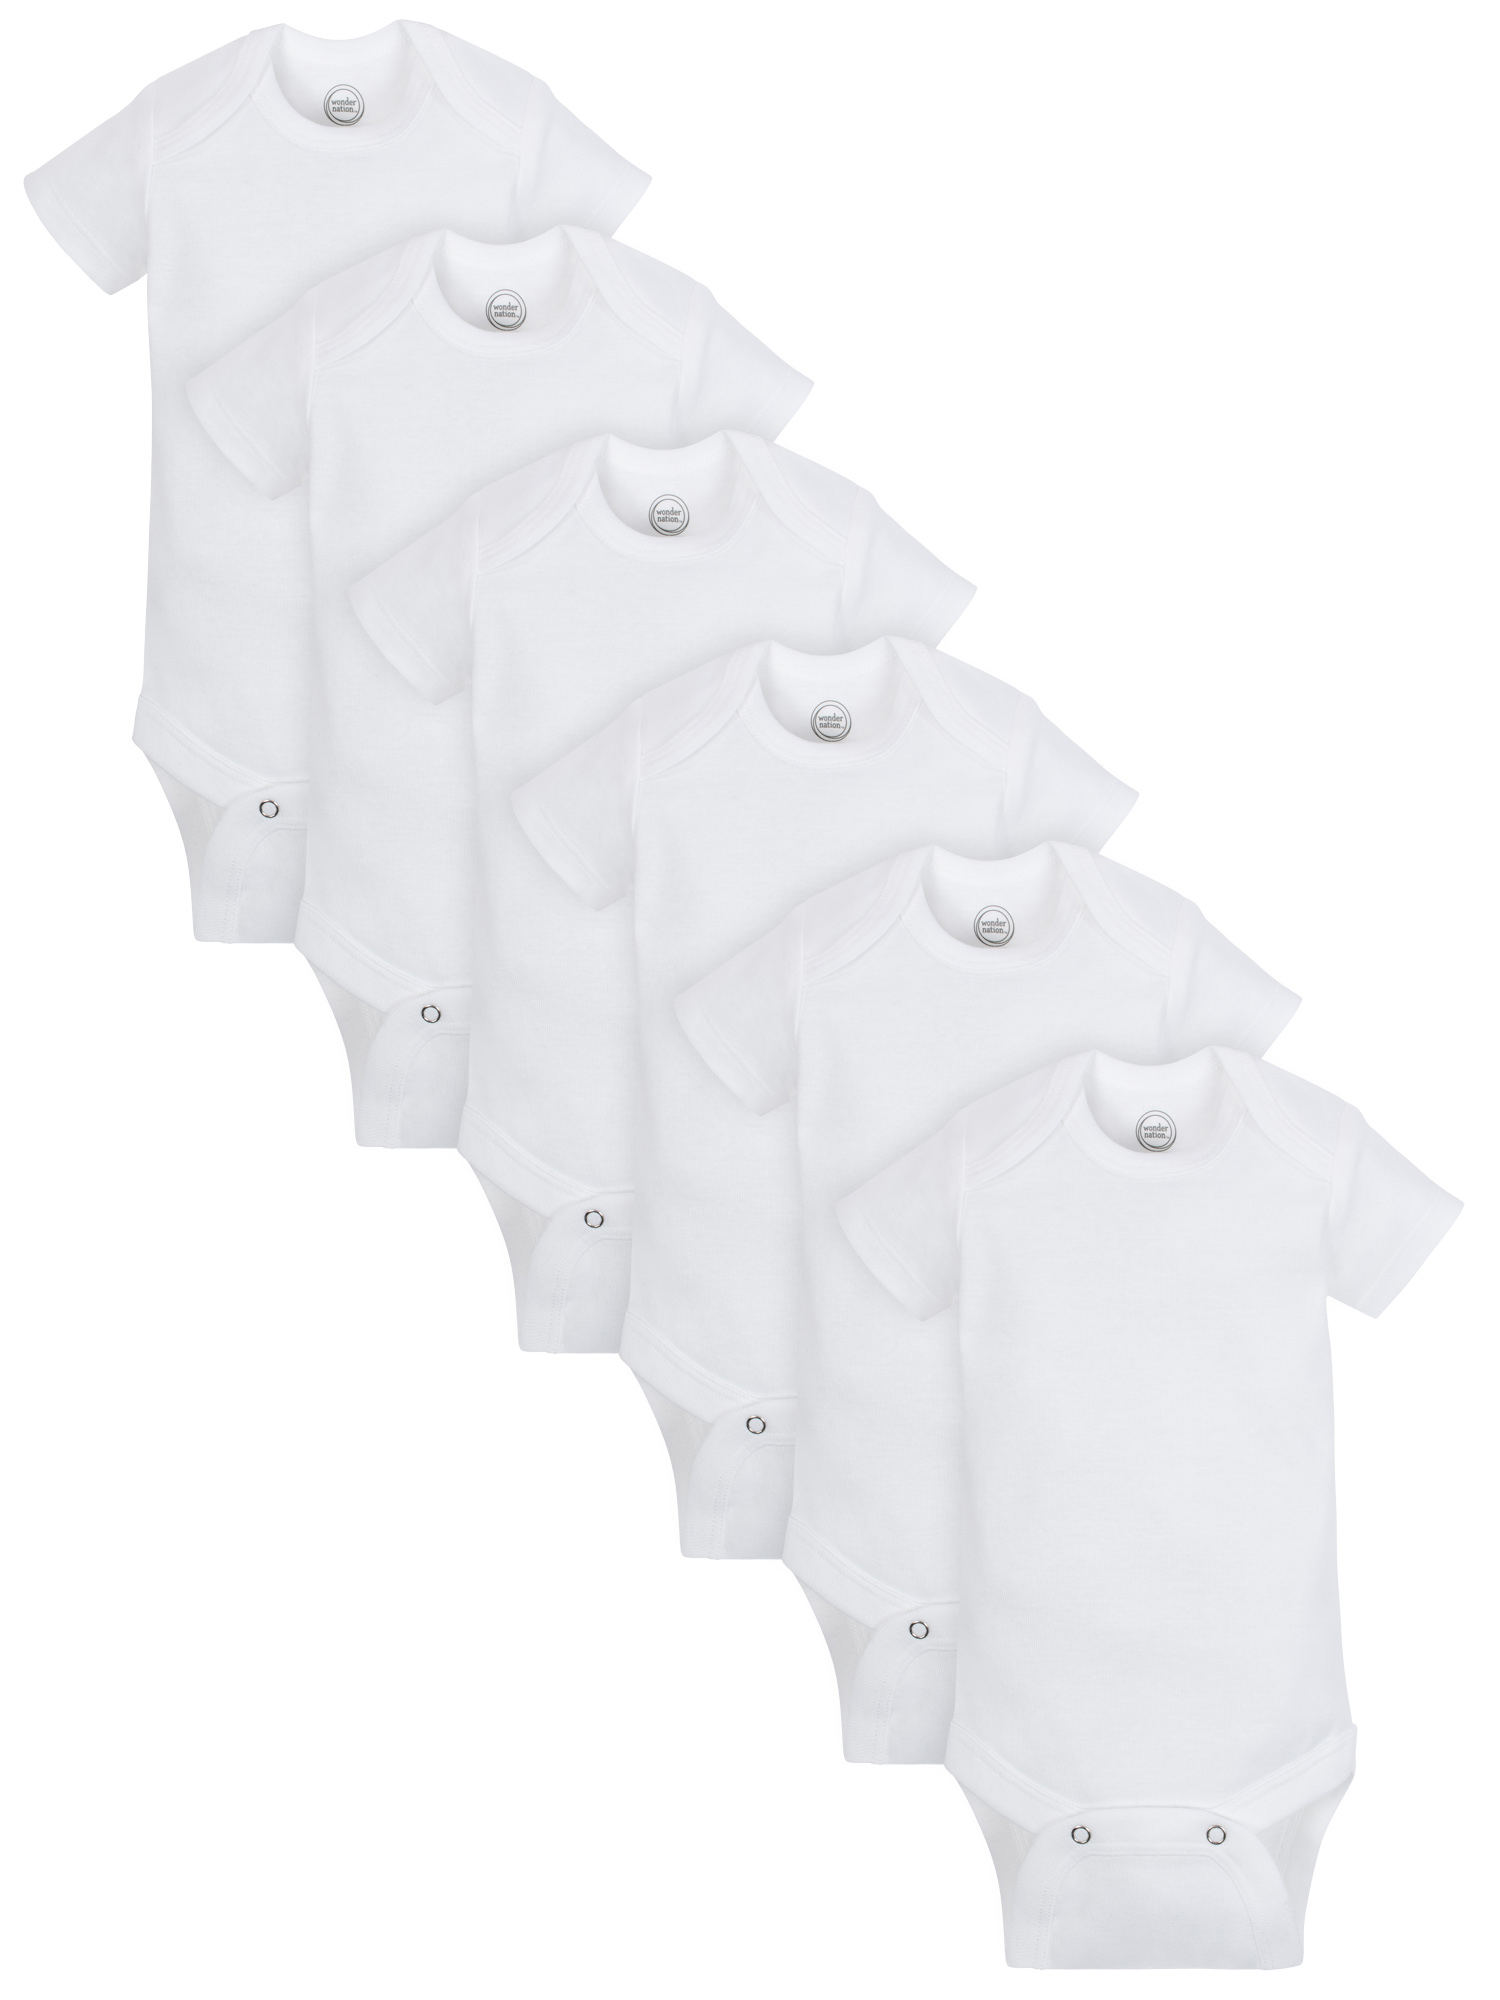 Wonder Nation Short Sleeve White Bodysuits, 6pk (Baby Boys or Baby Girls, Unisex)